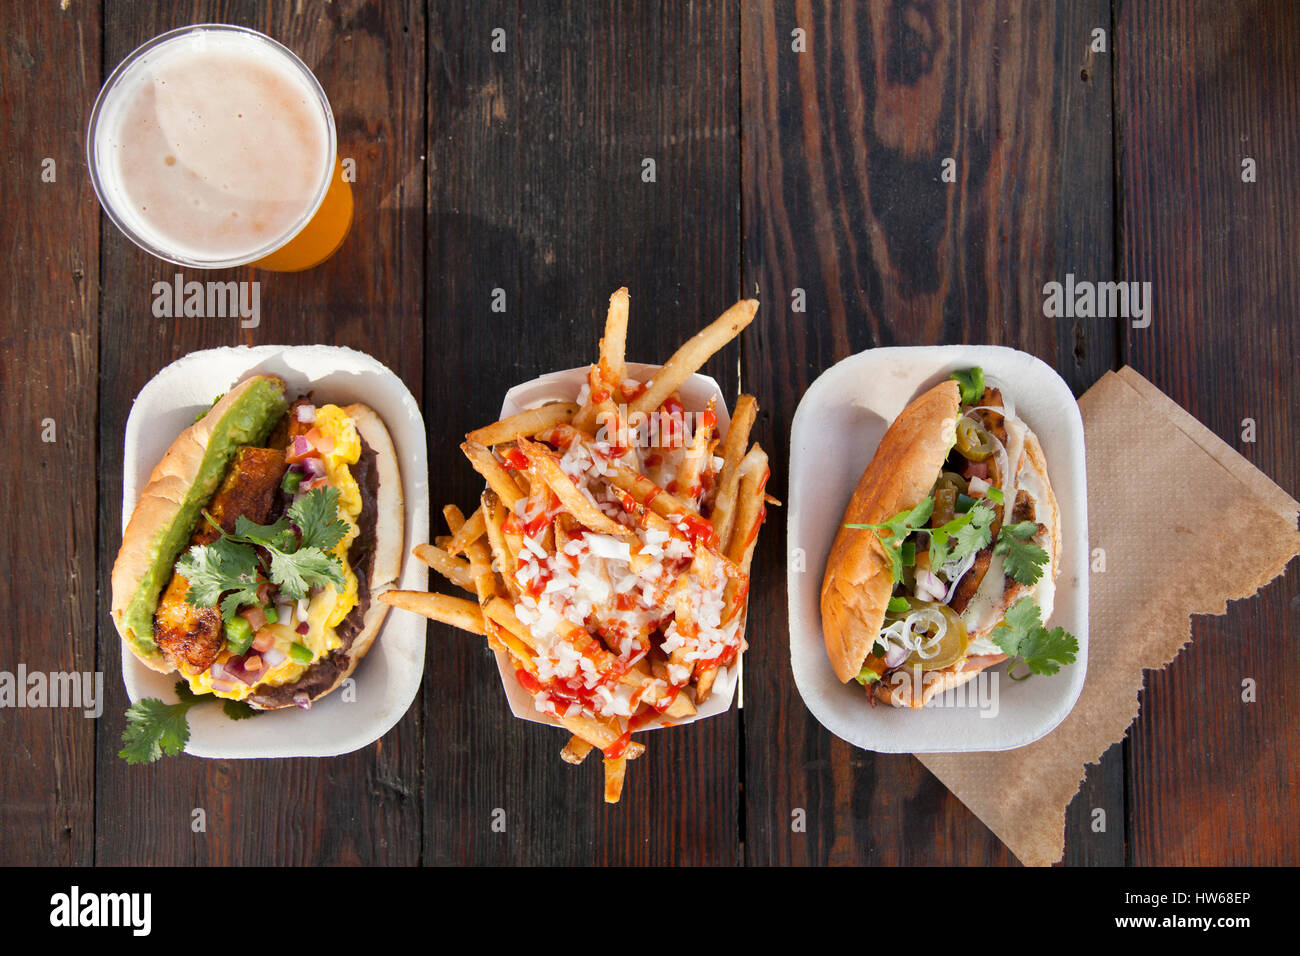 Beer with sandwiches and fries - Stock Image